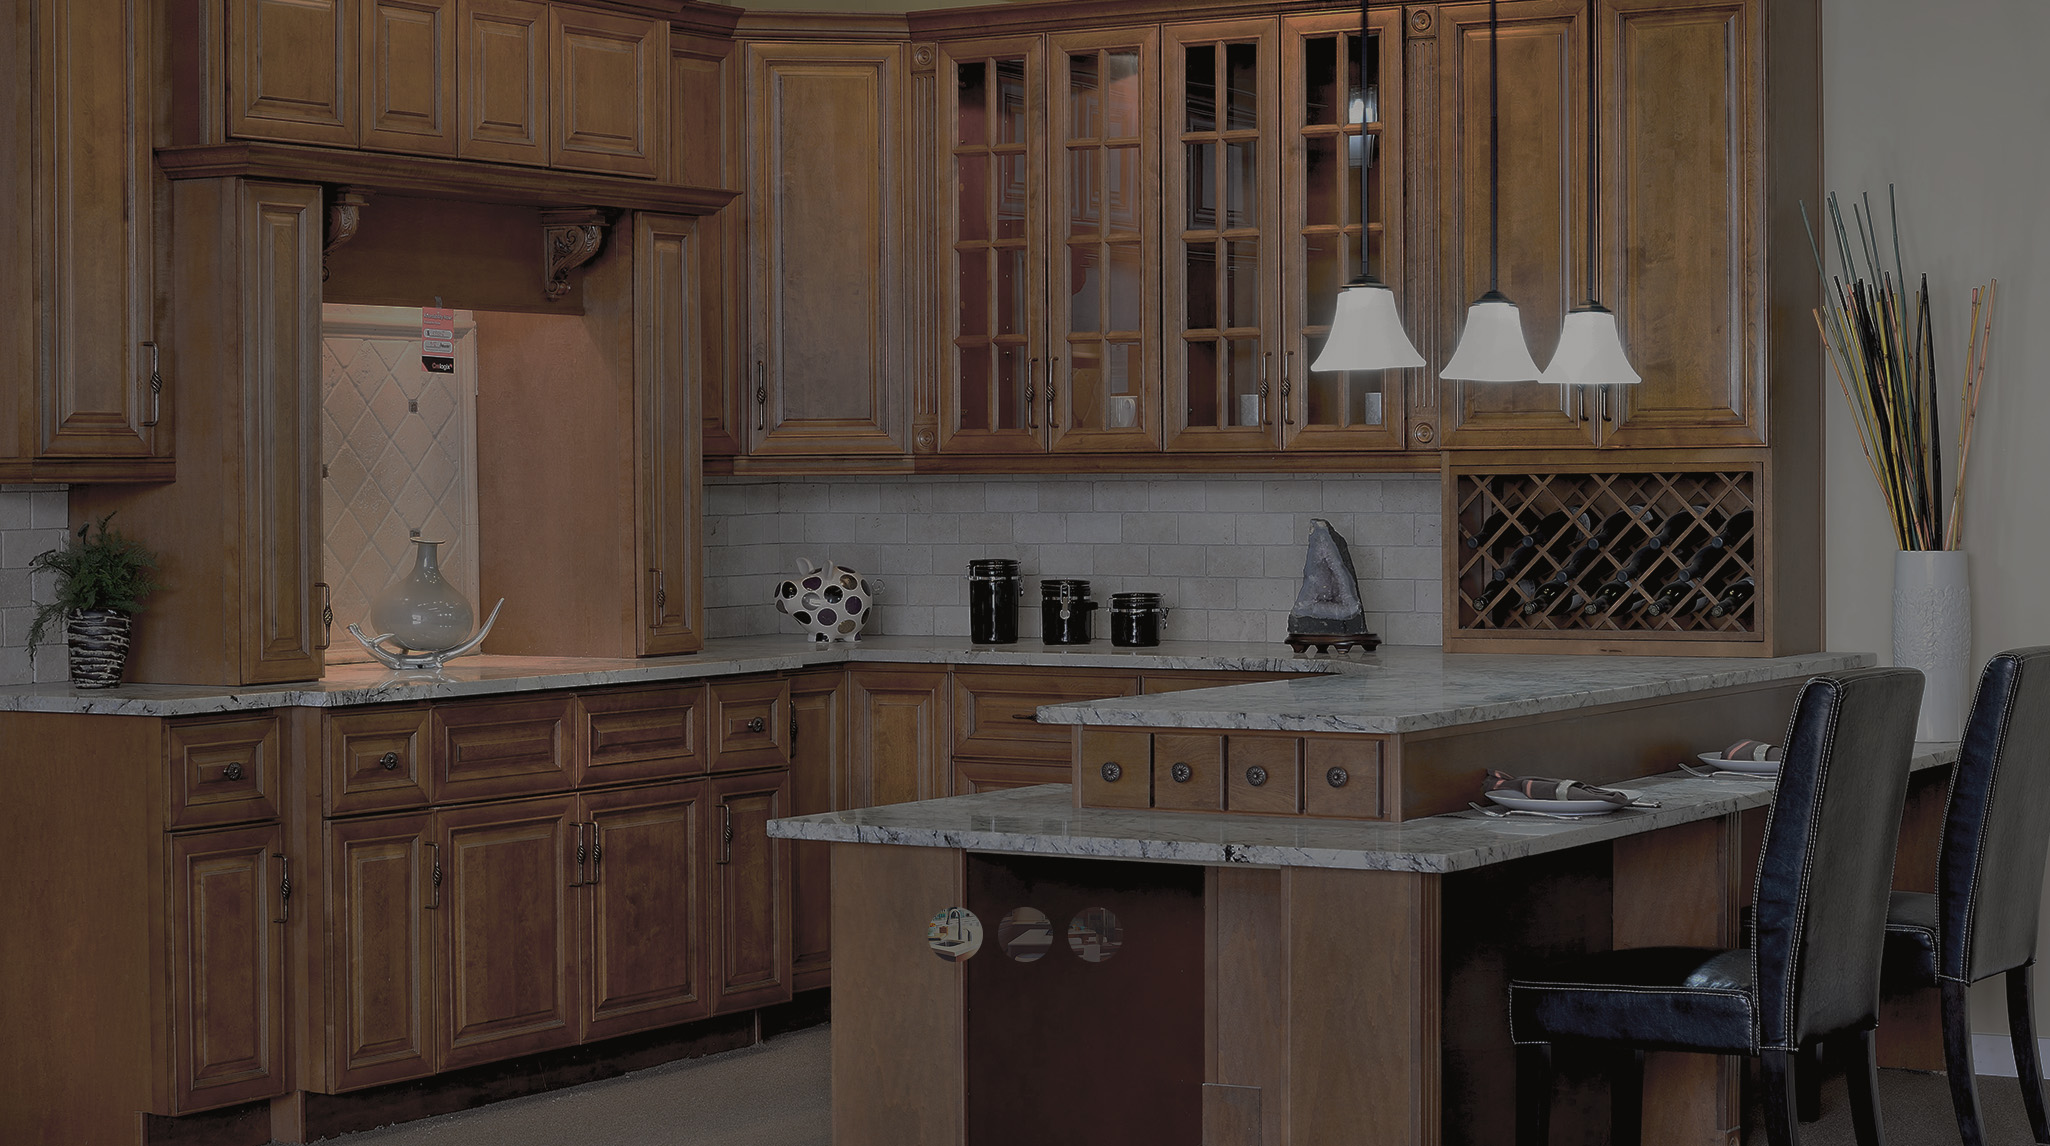 Cowry kitchen cabinets and countertops - High Quality Solid Hardwood Cabinets